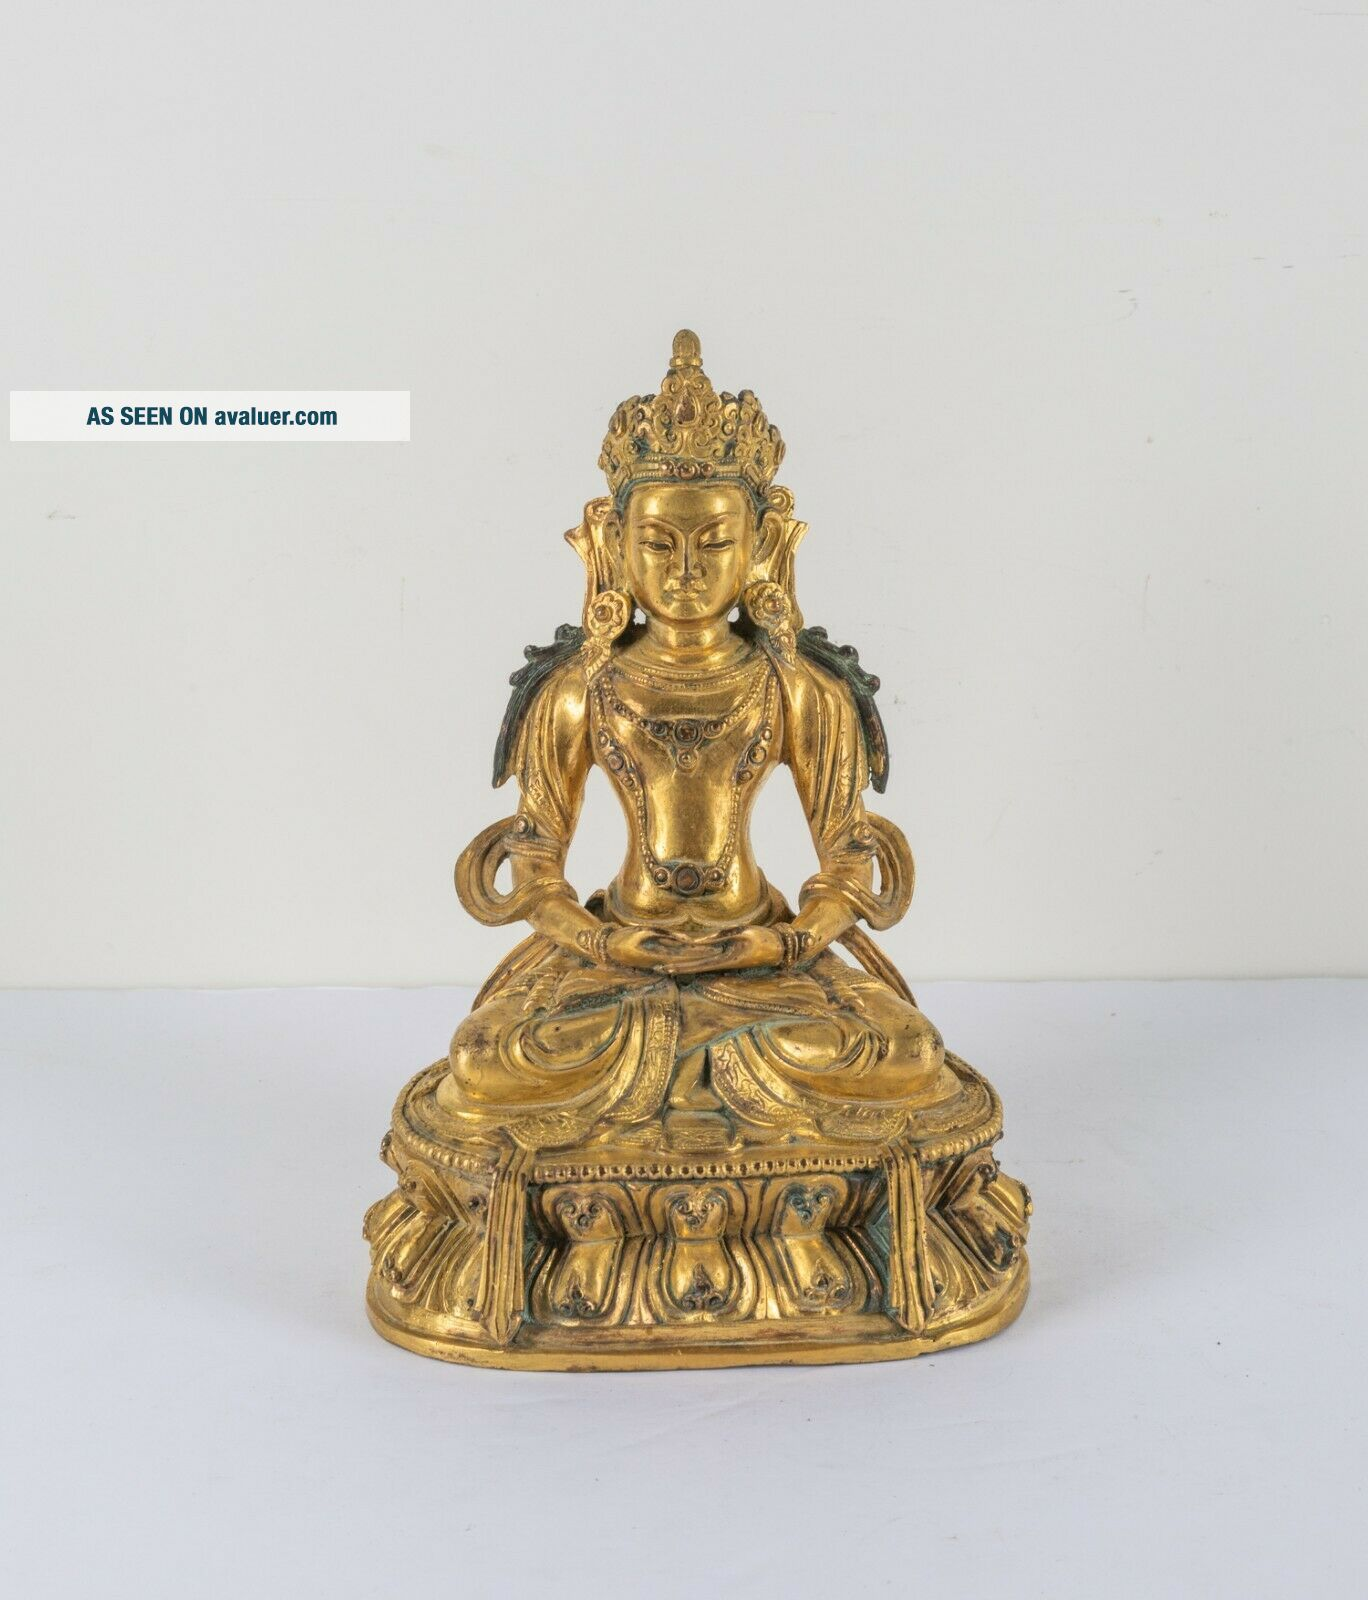 Chinese Antique Ching Dynasty Gilt Bronze Figure Of Buddha,  Kuangxu Period